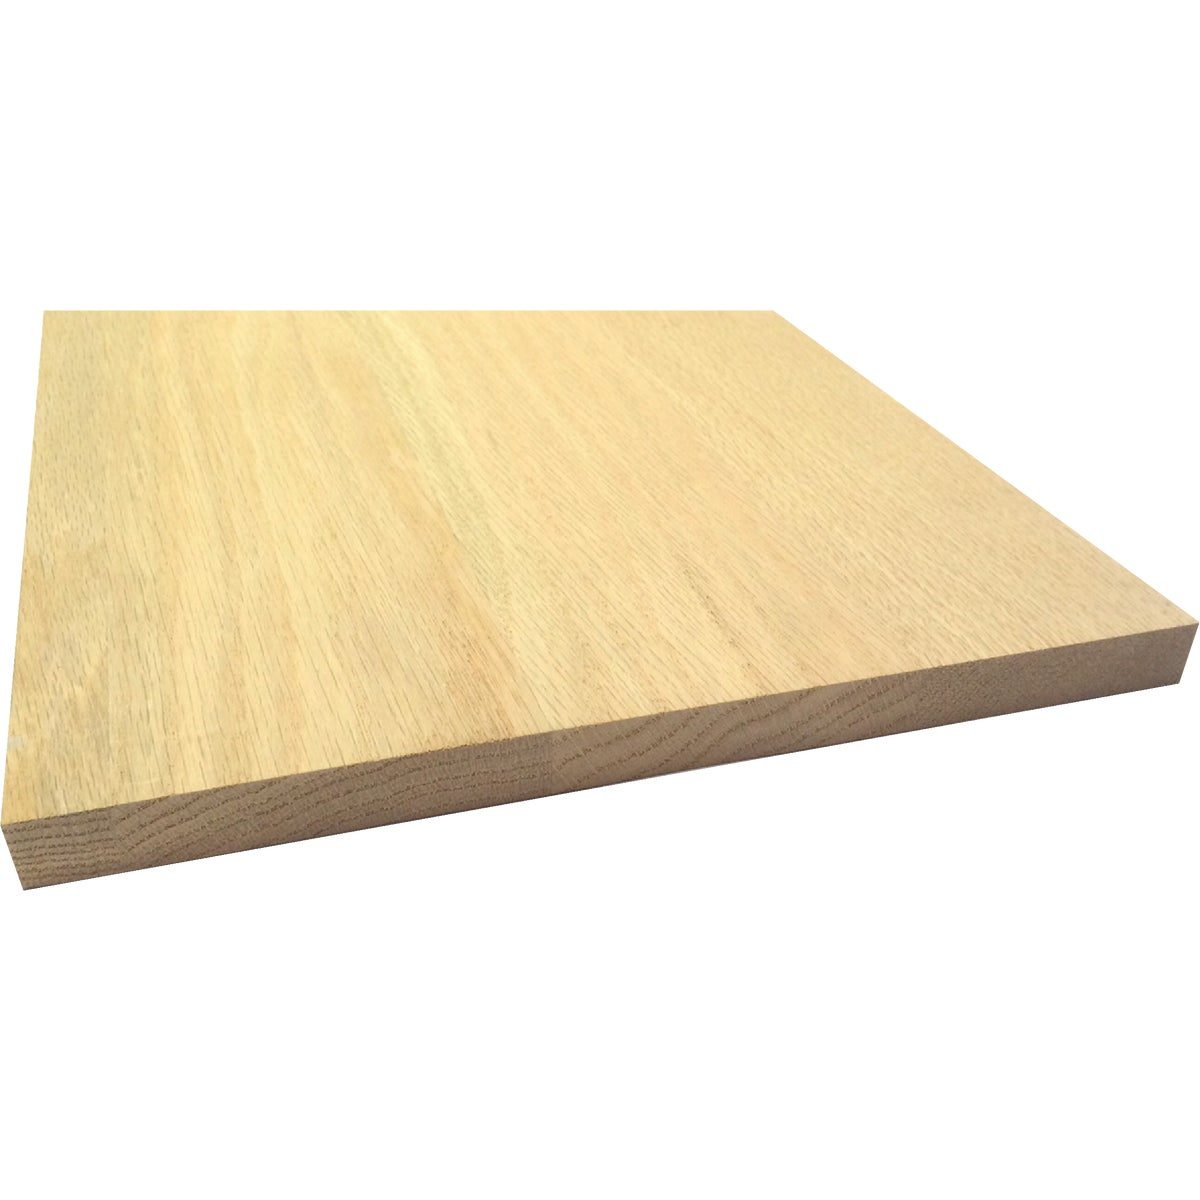 "1X12""X8' OAK BOARD - PB19547 by Waddell Mfg Company"